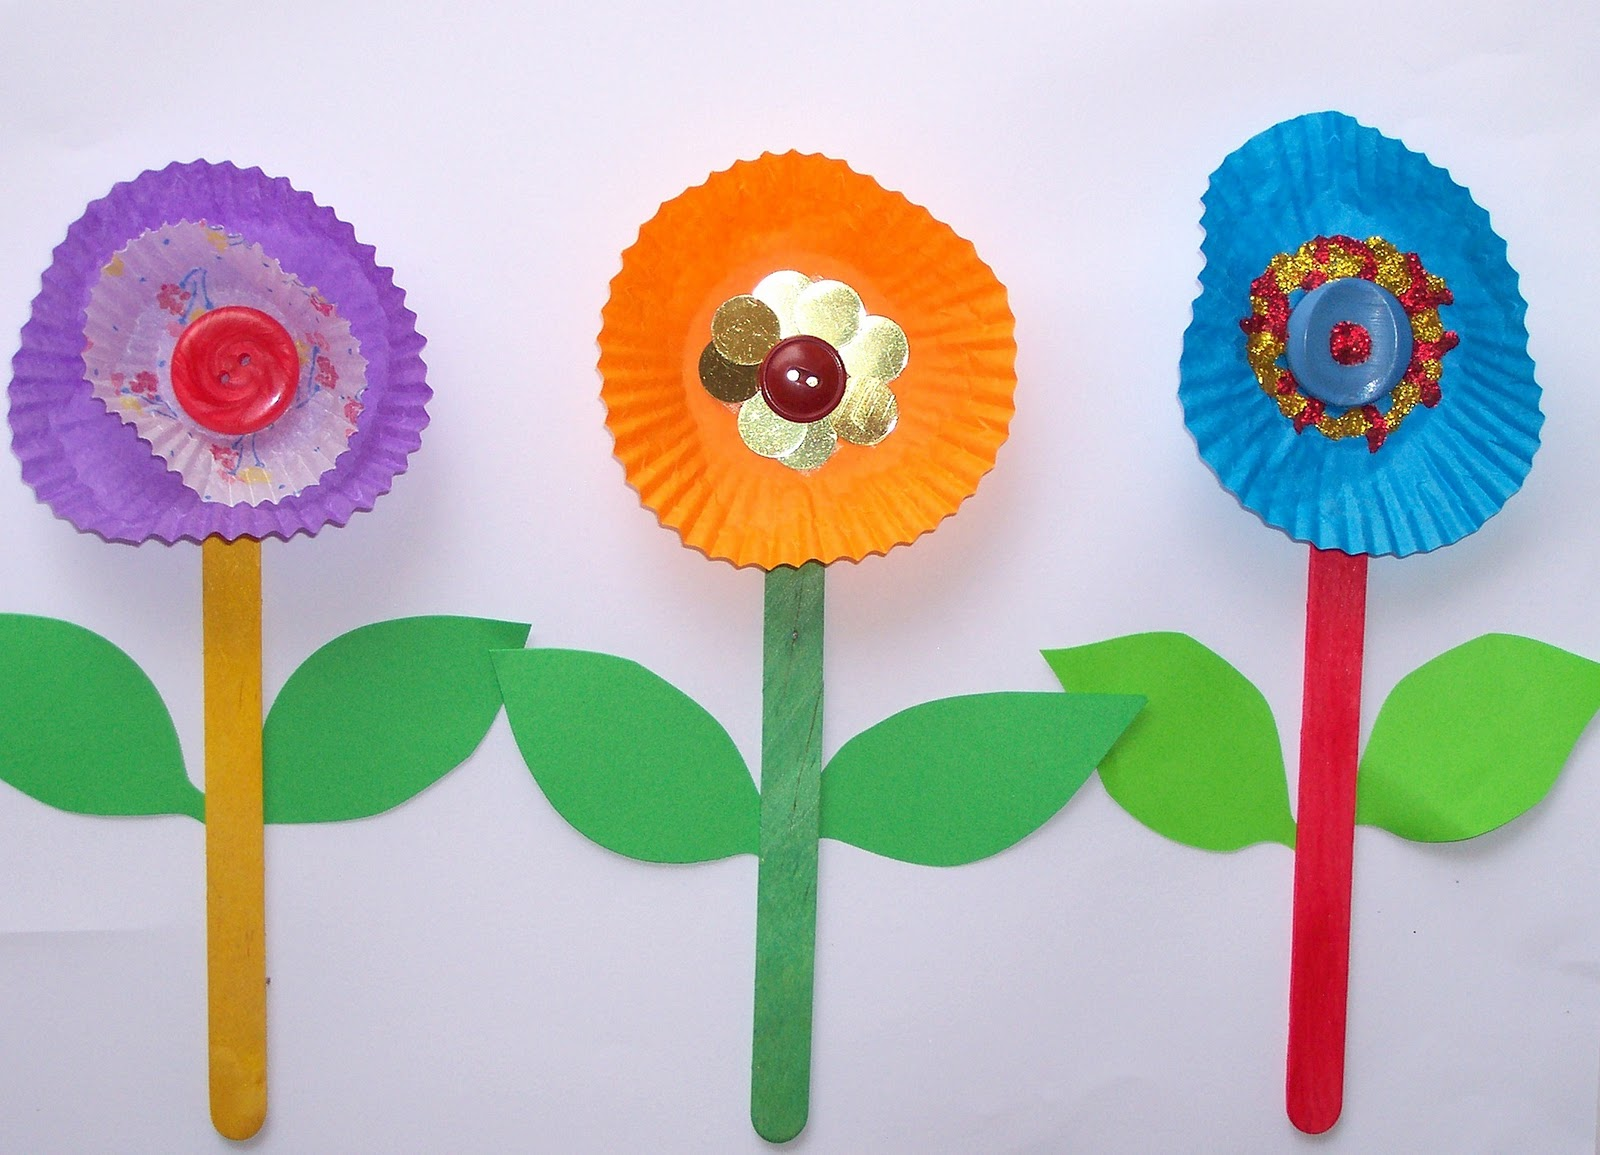 Bryan Lie Art Easy Crafts For Kids Quick Arts And Craft Ideas